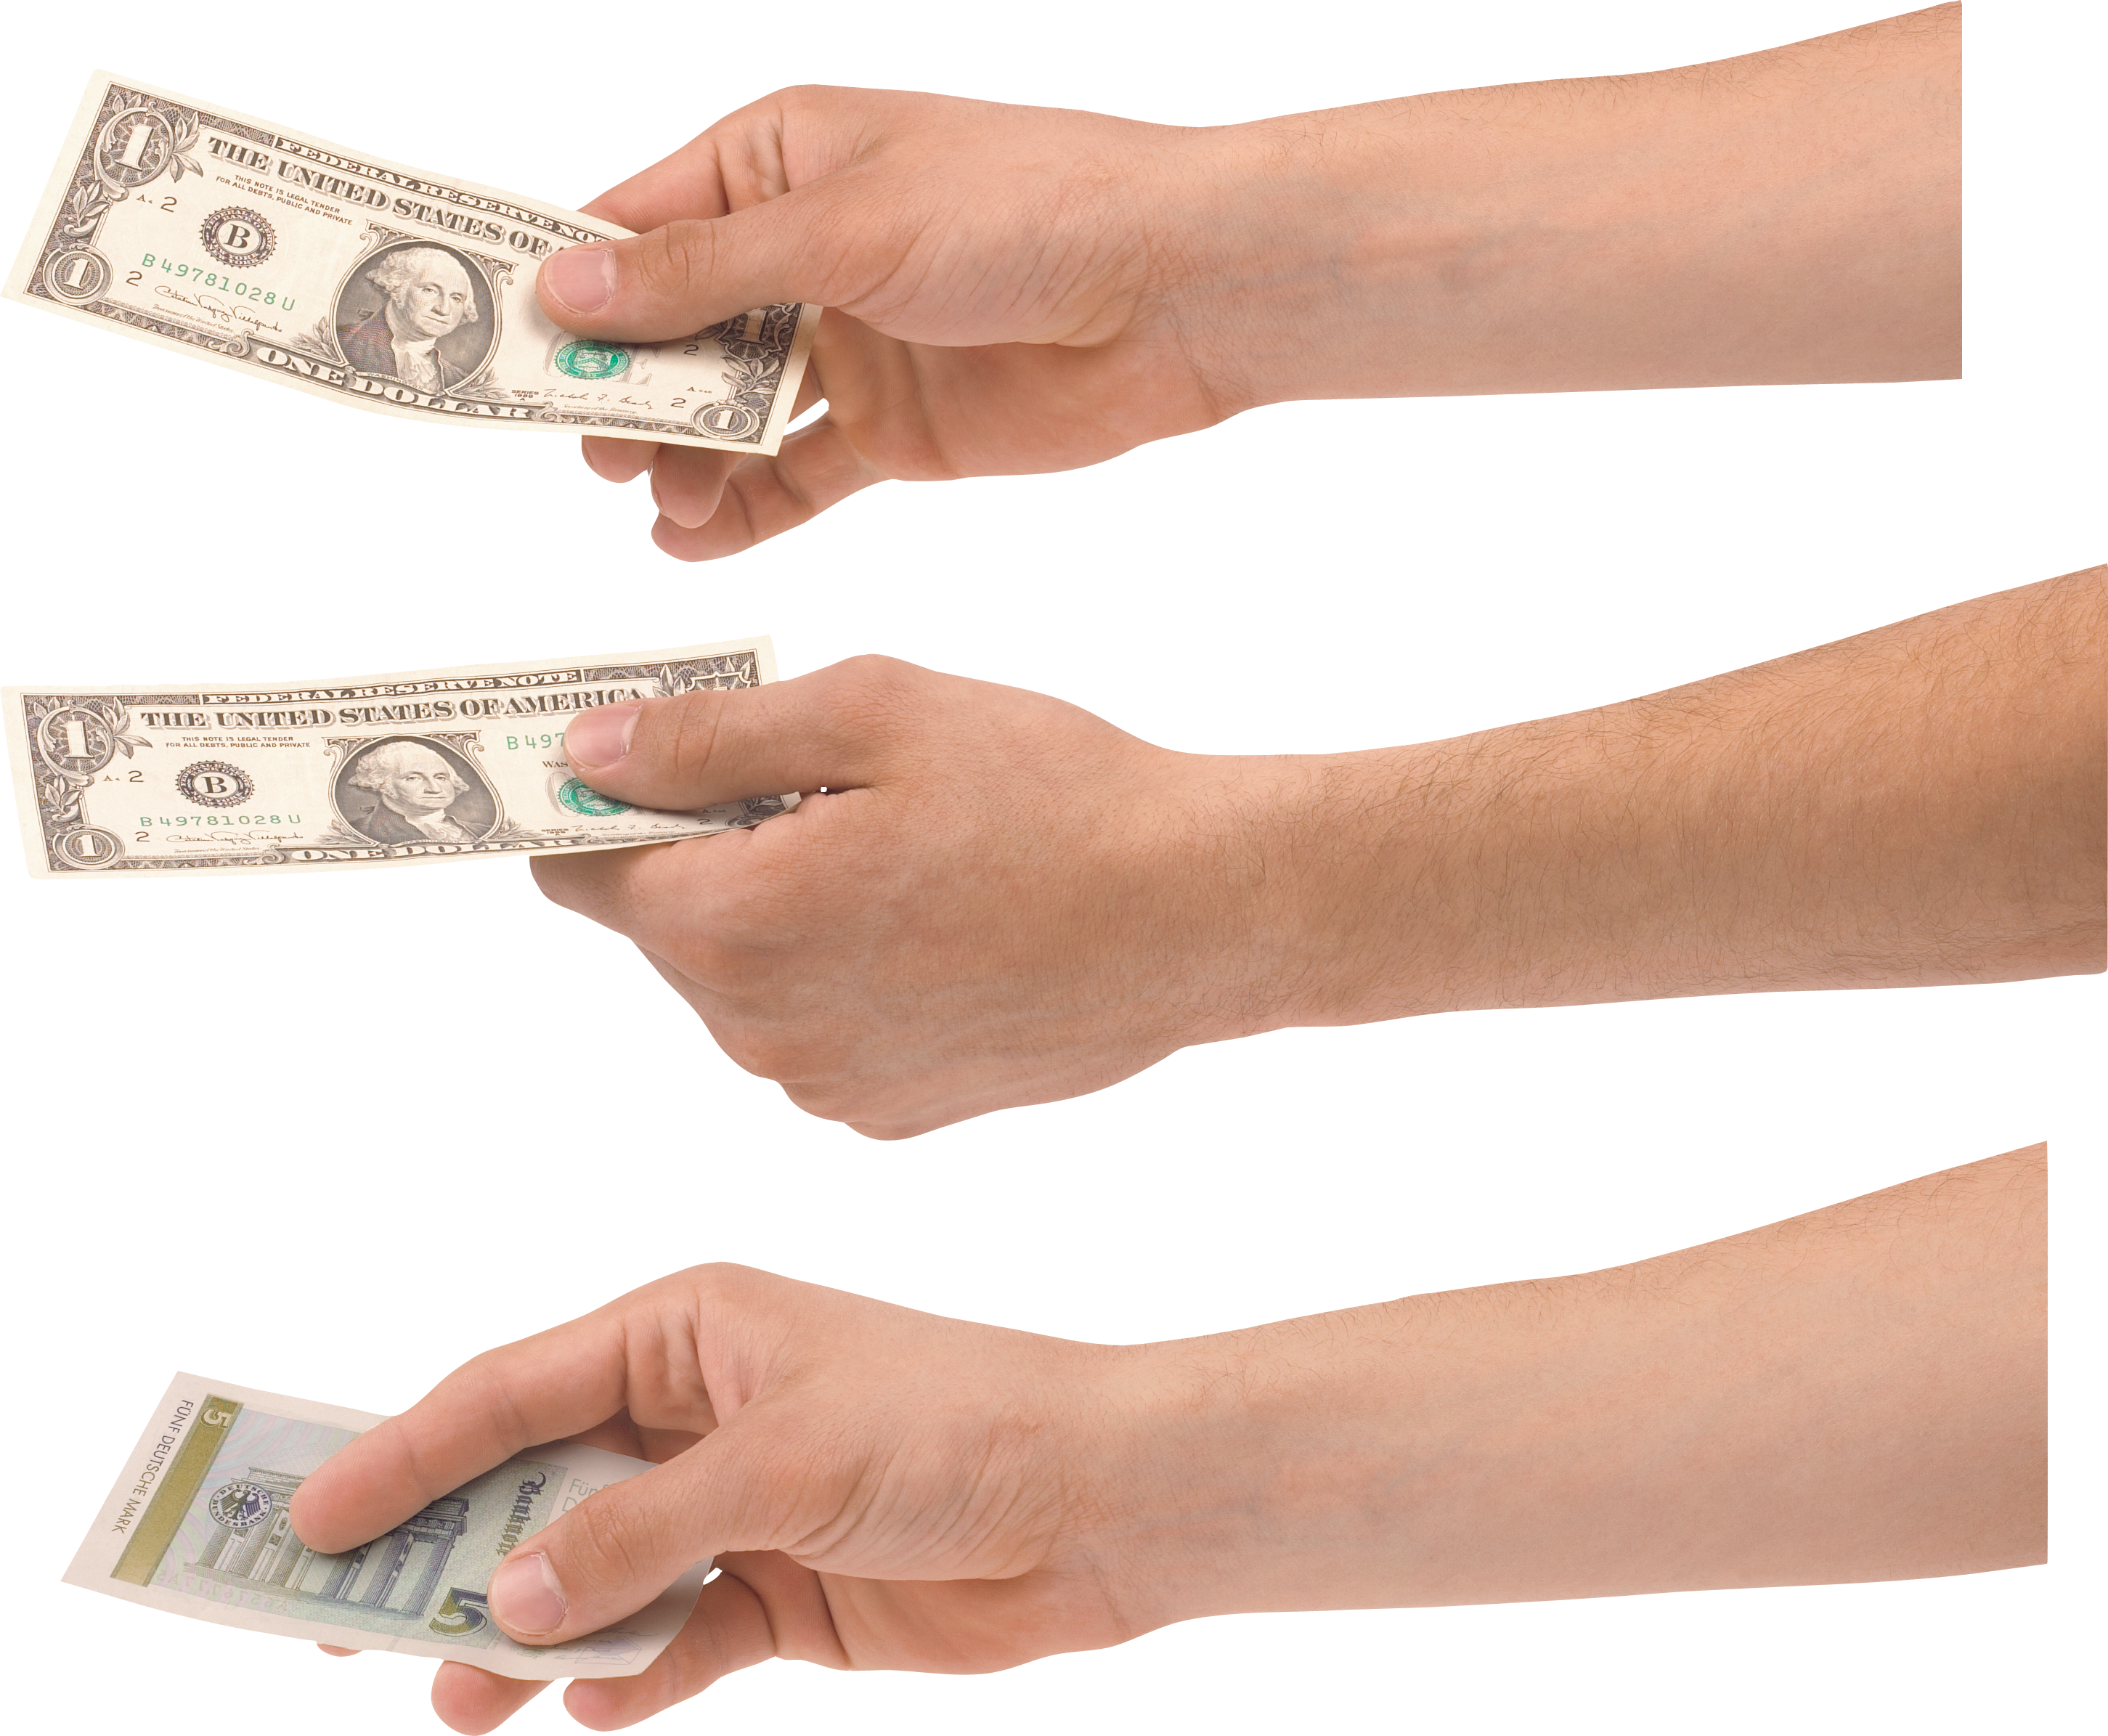 Hand with money clipart jpg free download Hand Holding Money One | Isolated Stock Photo by noBACKS.com jpg free download